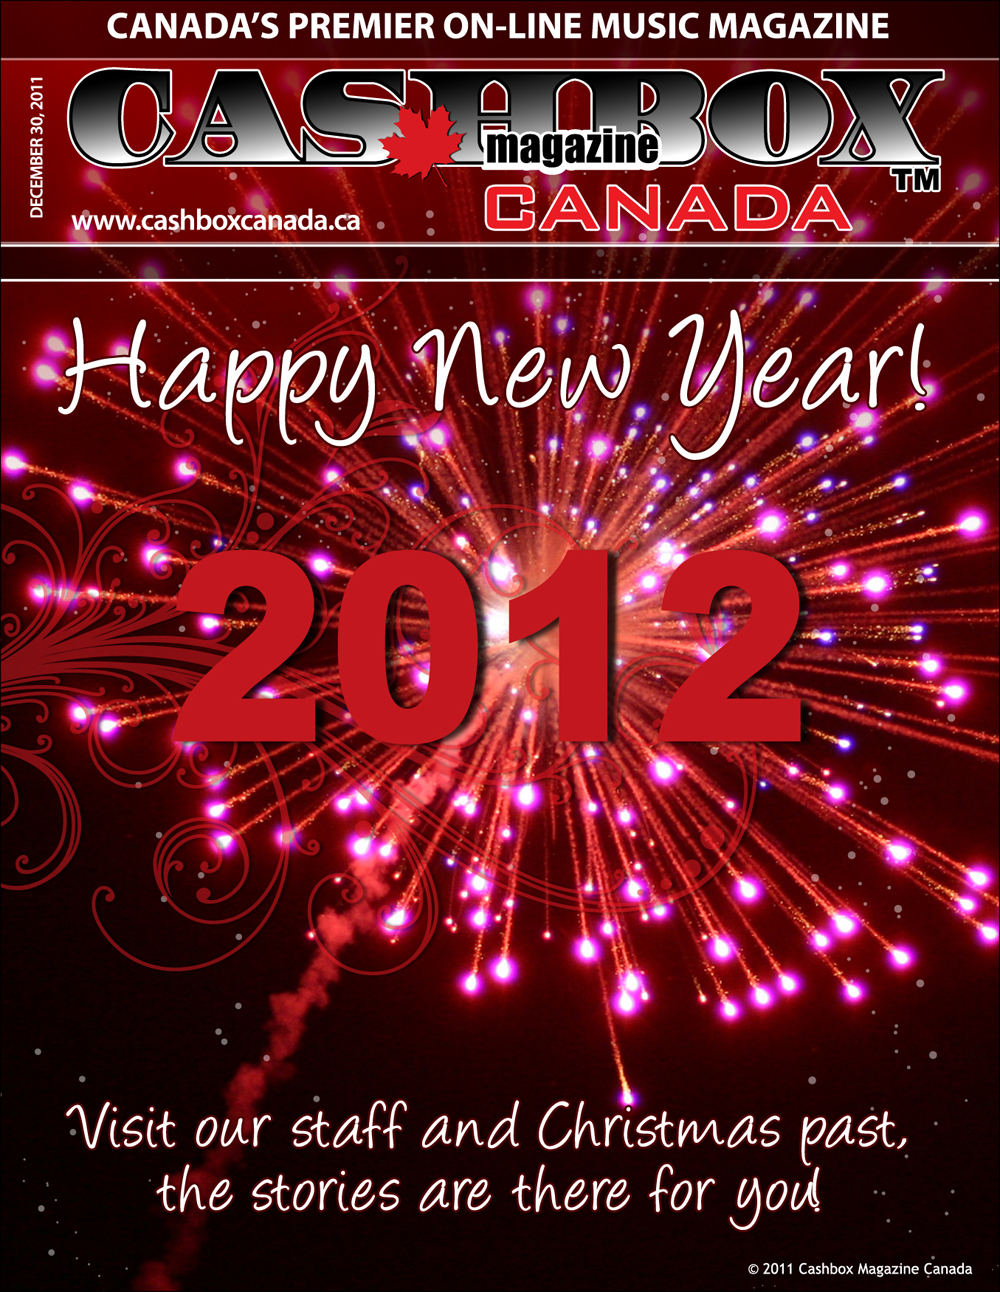 Happy New Year from Cashbox Canada !